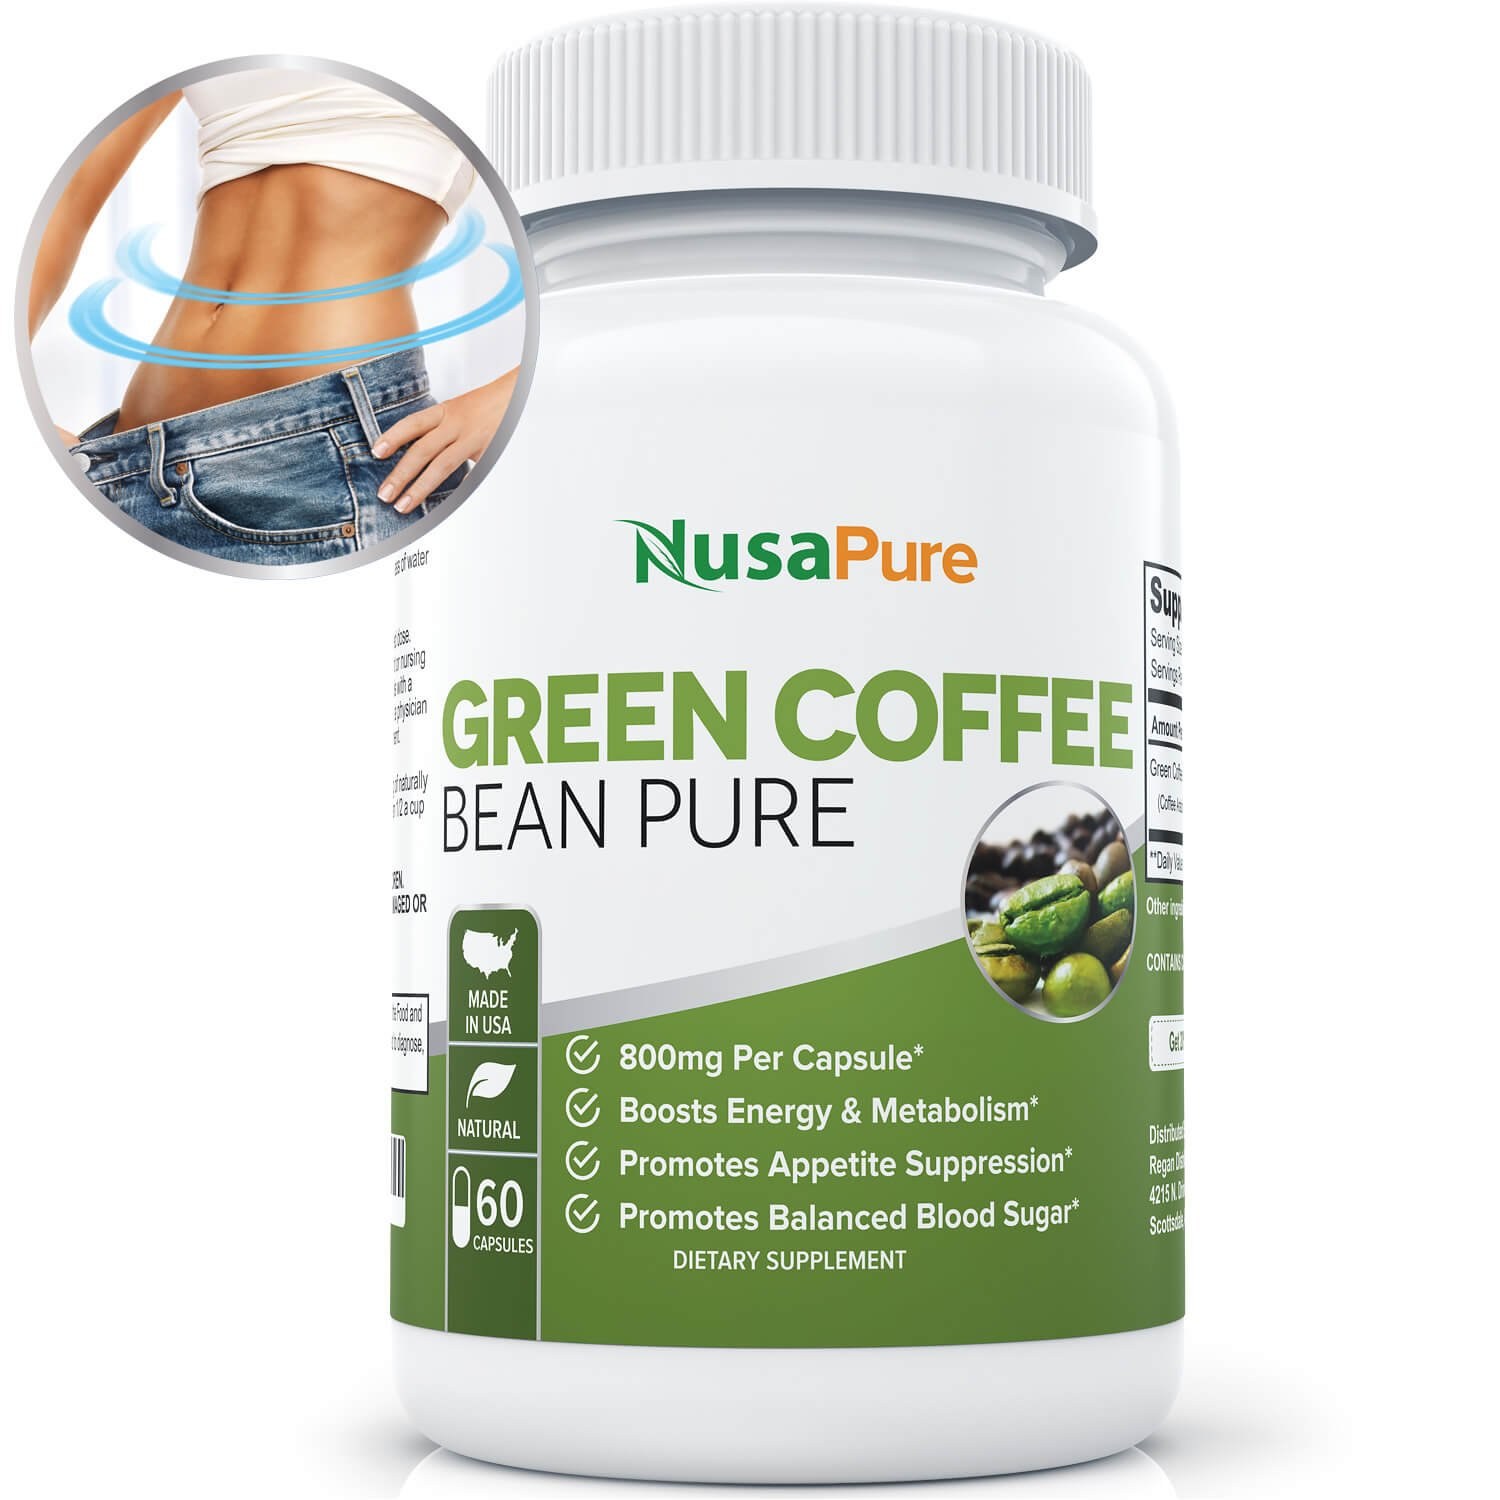 NusaPure Green Coffee Bean Extract Weight Loss Supplement, 60 Capsules